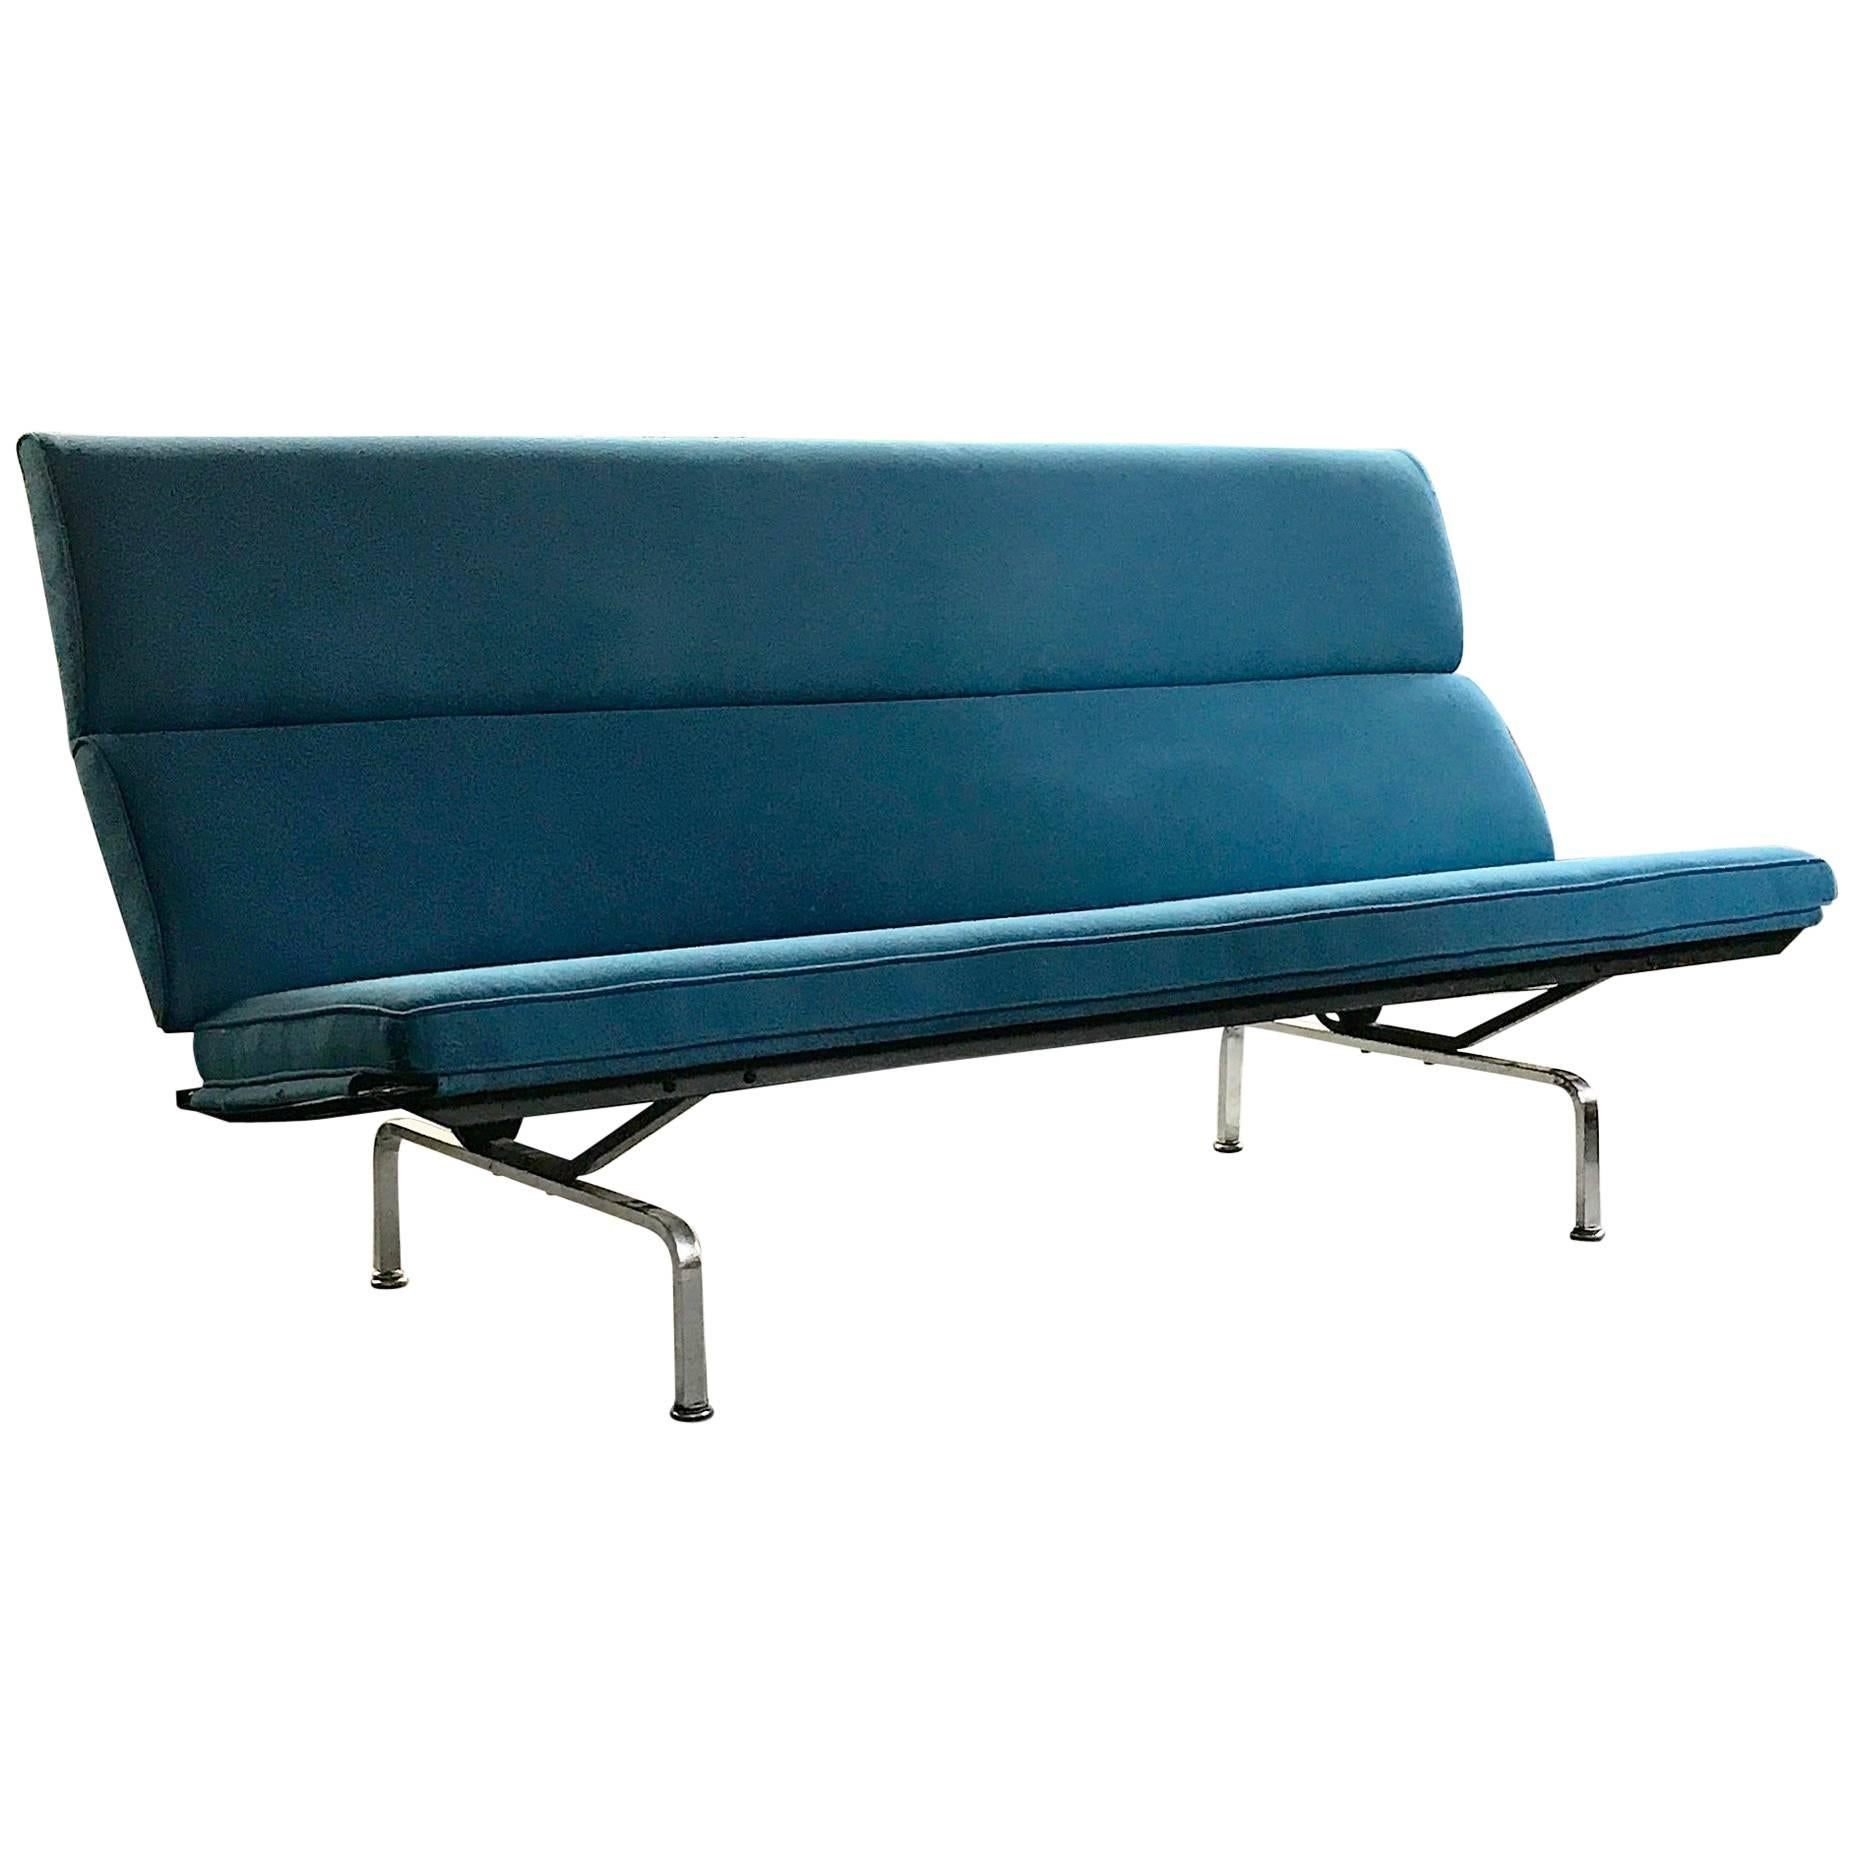 Vintage Eames Sofa Compact By Herman Miller For Sale